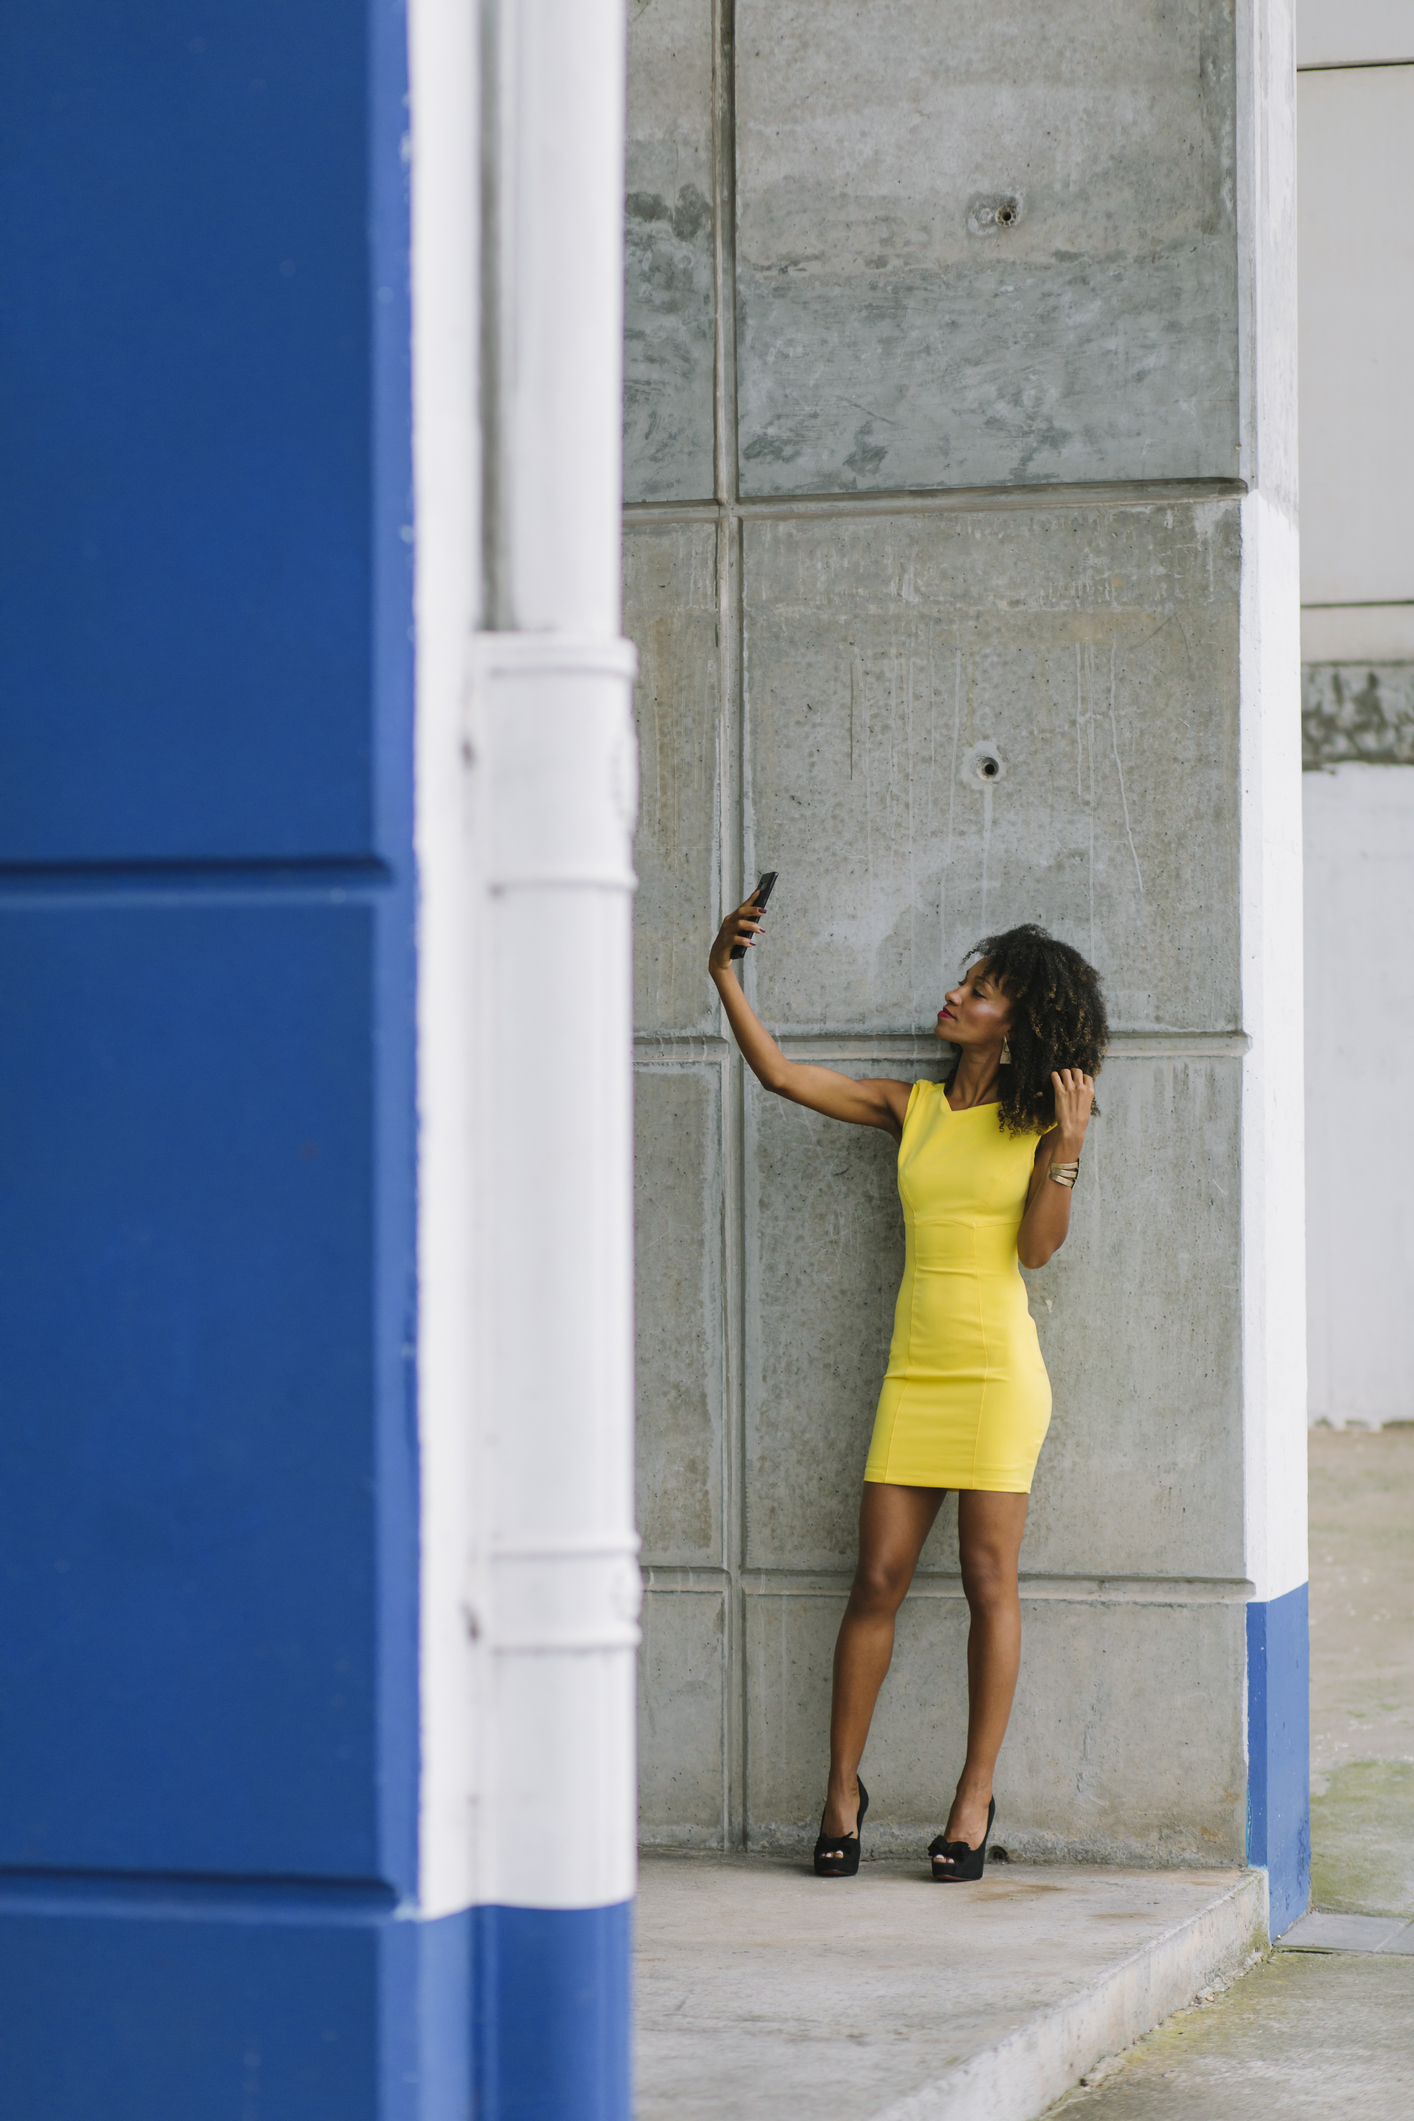 Fashionable businesswoman in yellow dress taking selfie with smartphone